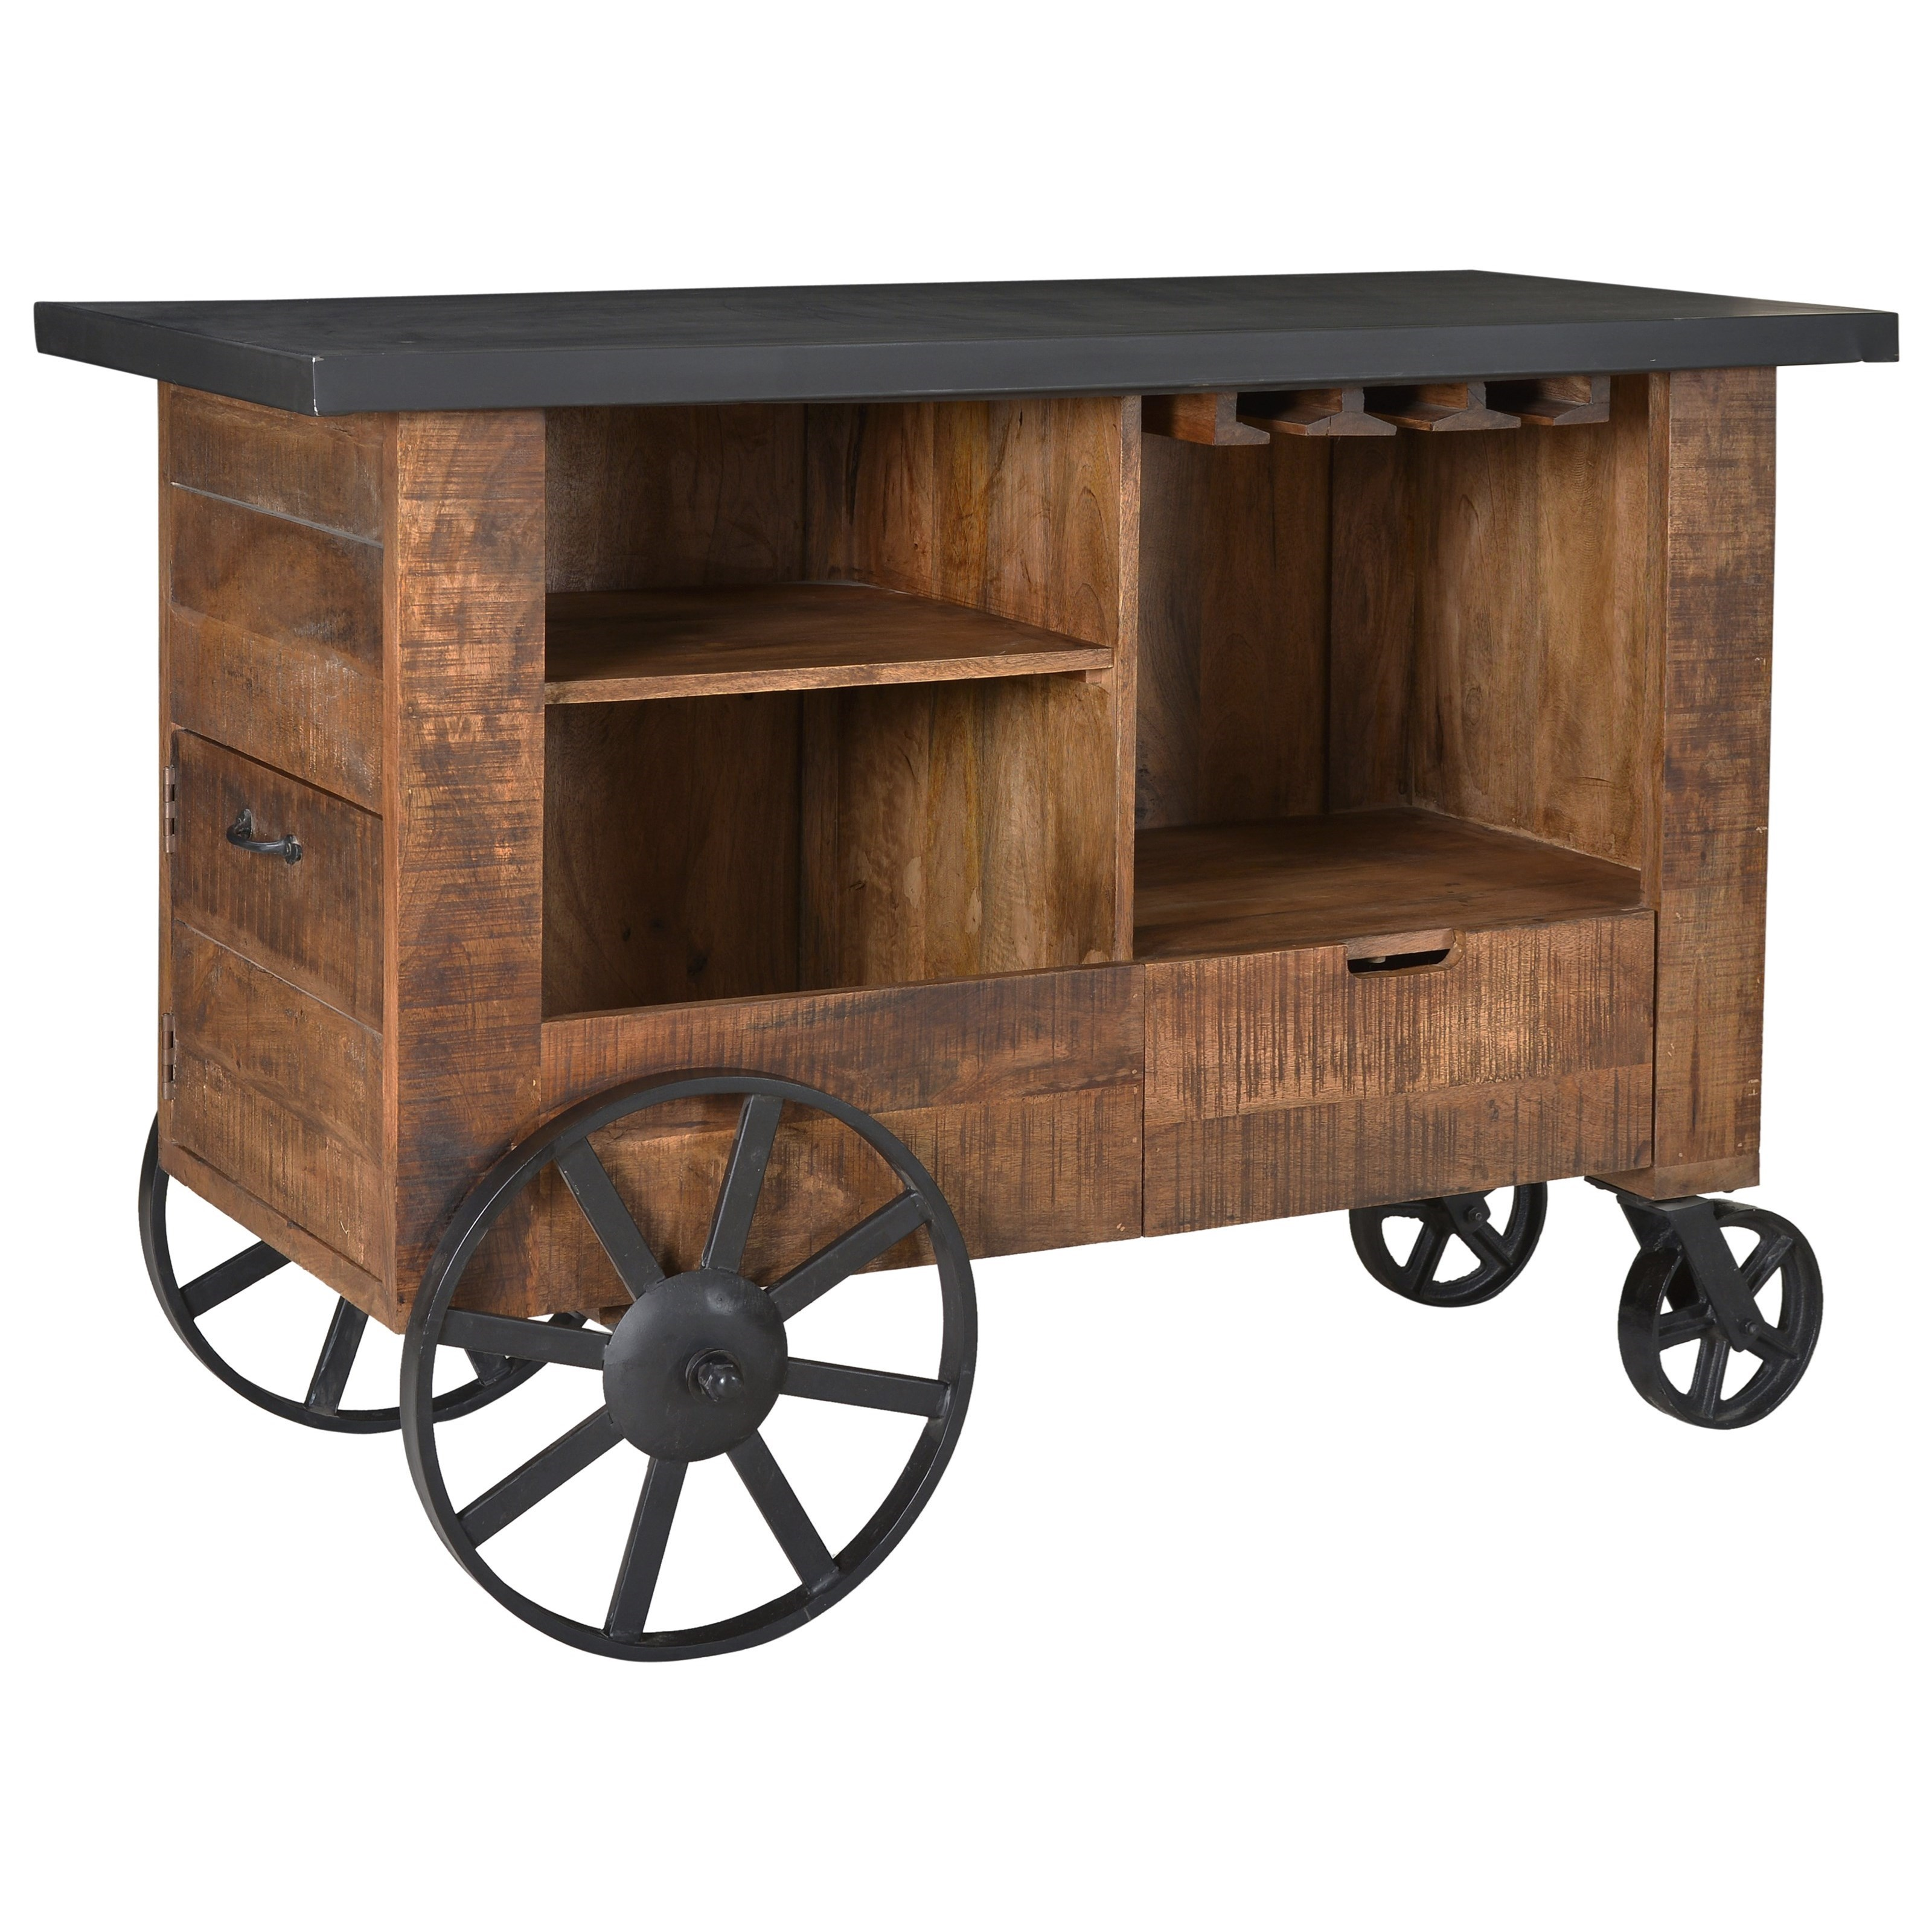 Ruby-Gordon Accents Coast to Coast Accents Bar Trolley - Item Number: 93415